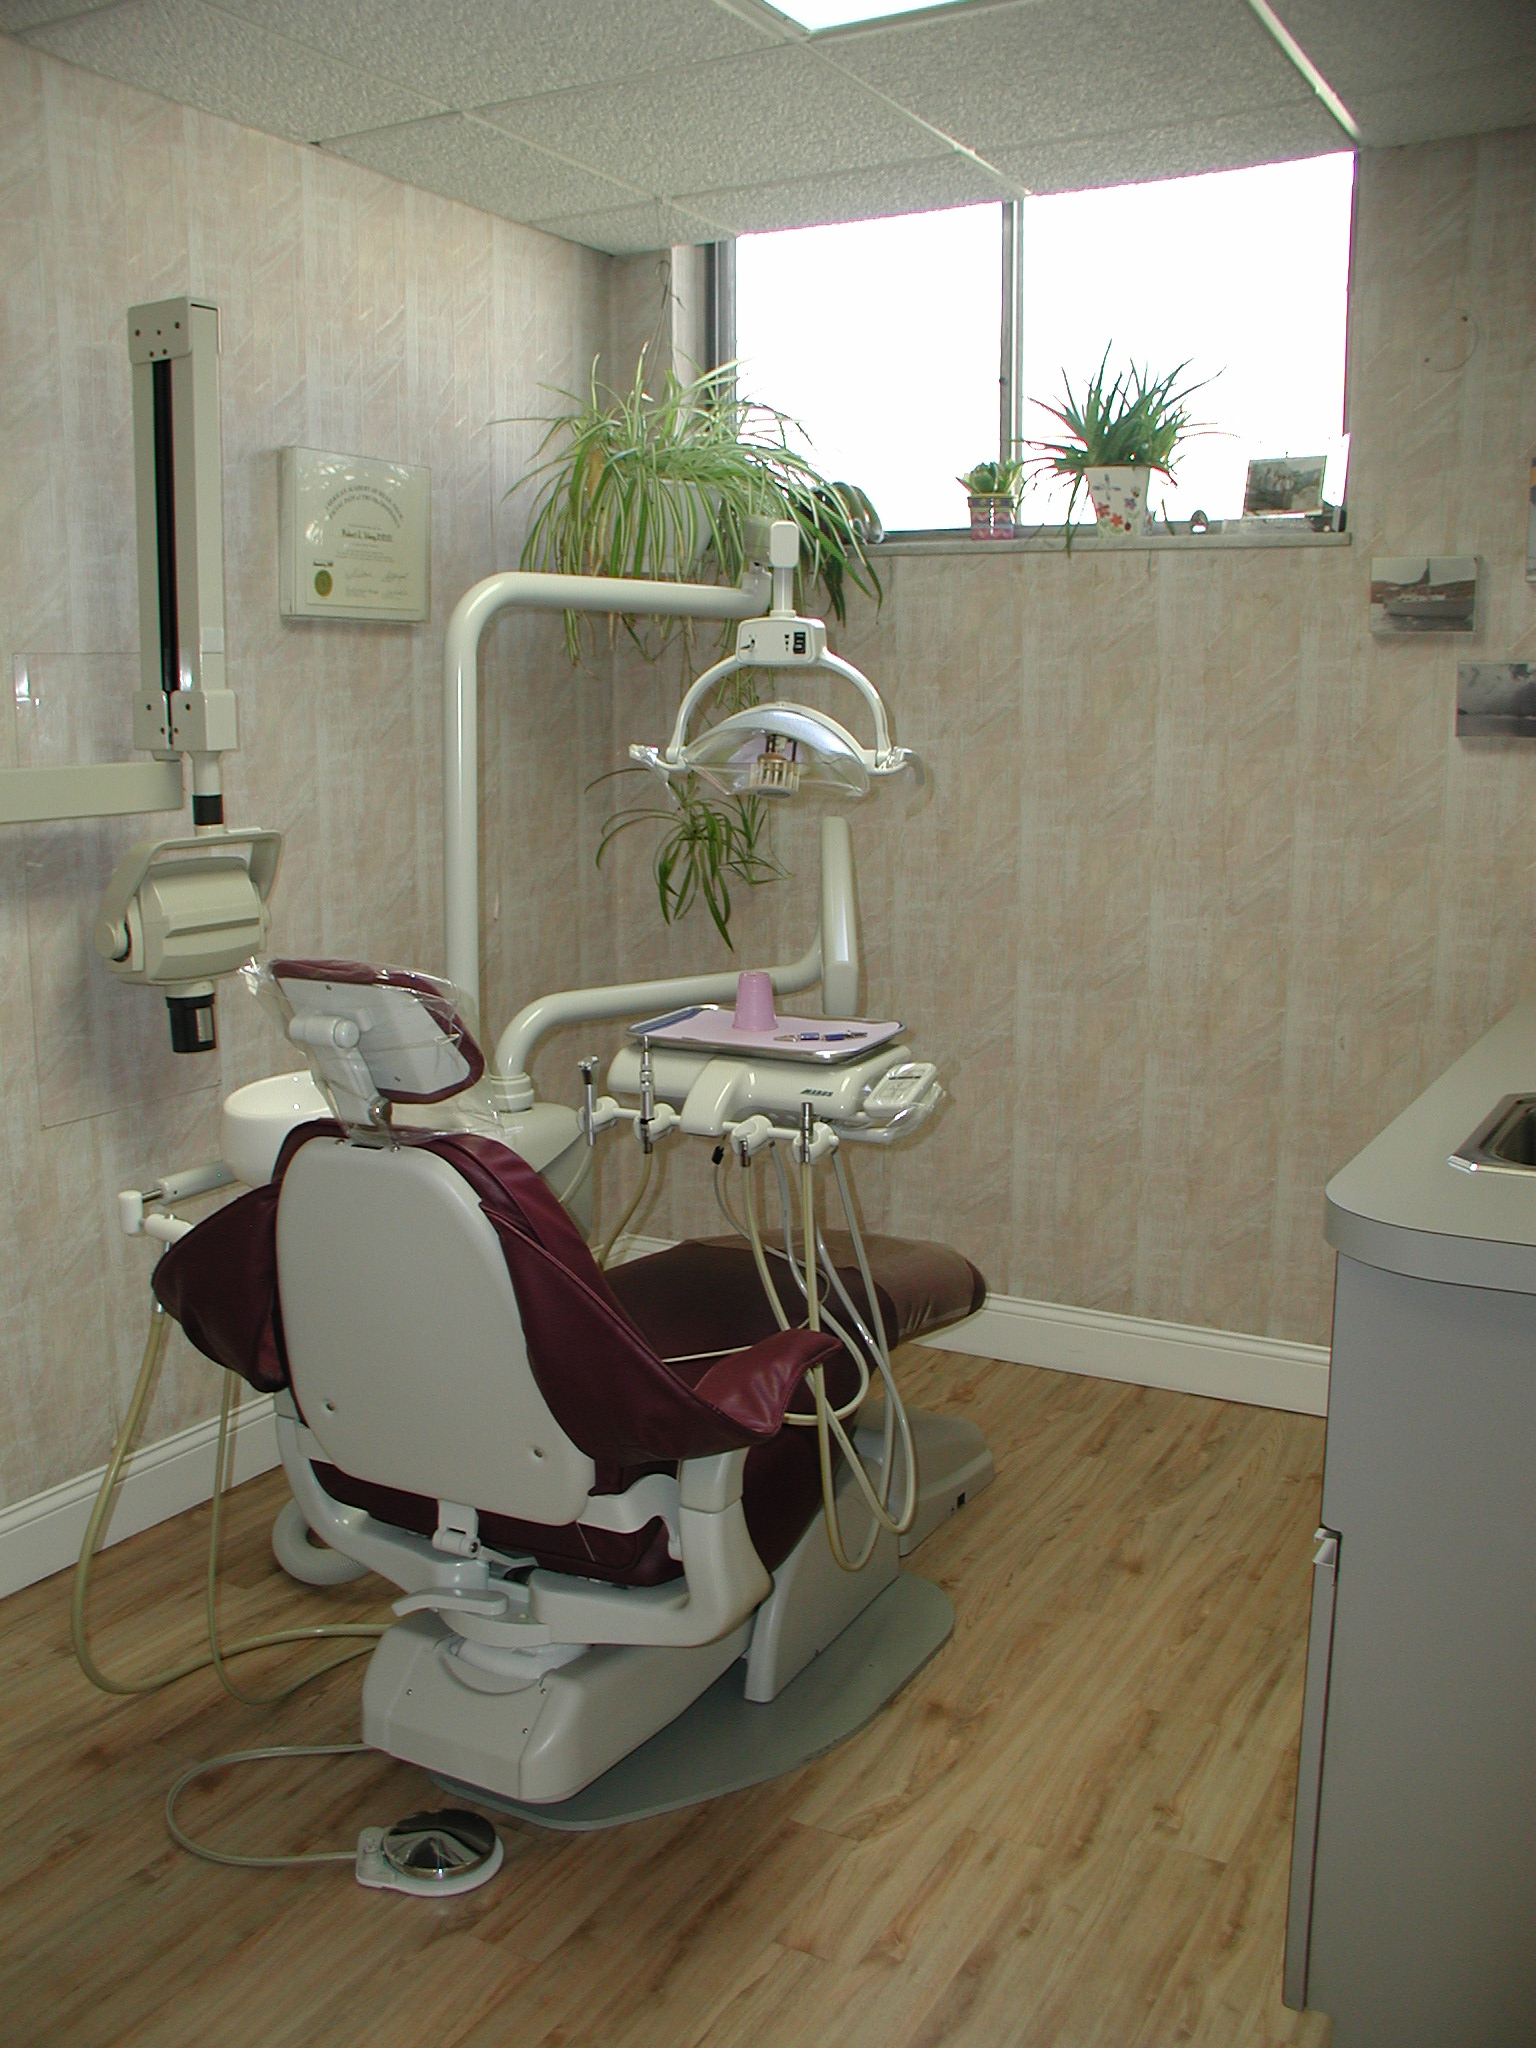 Treatment Room #1